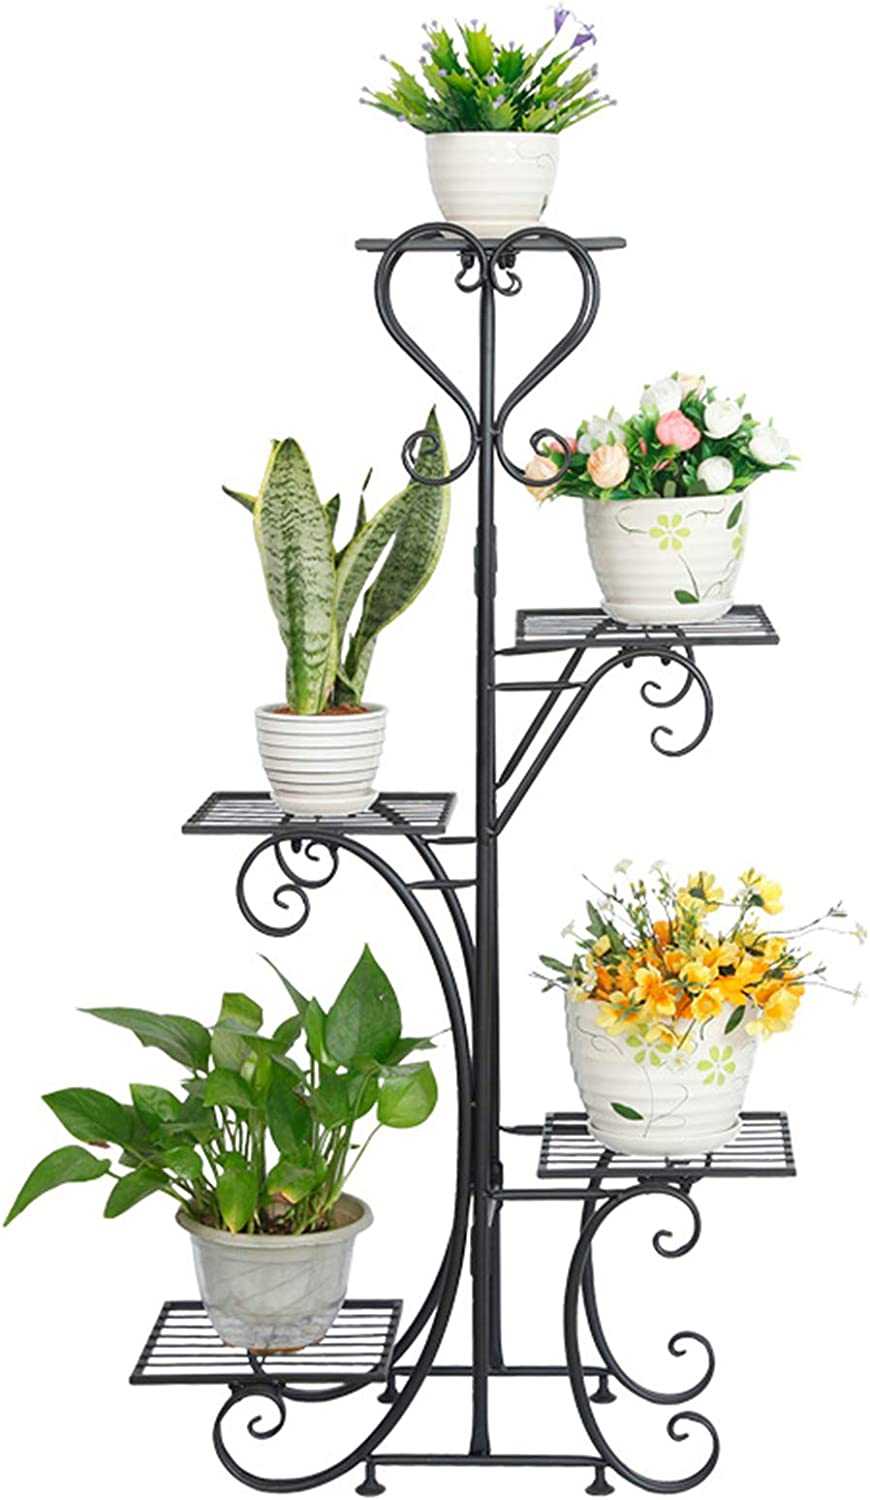 Discount is also underway Courier shipping free shipping Metal Flower Display Stand Outdoor Garden Plant Fl Holder